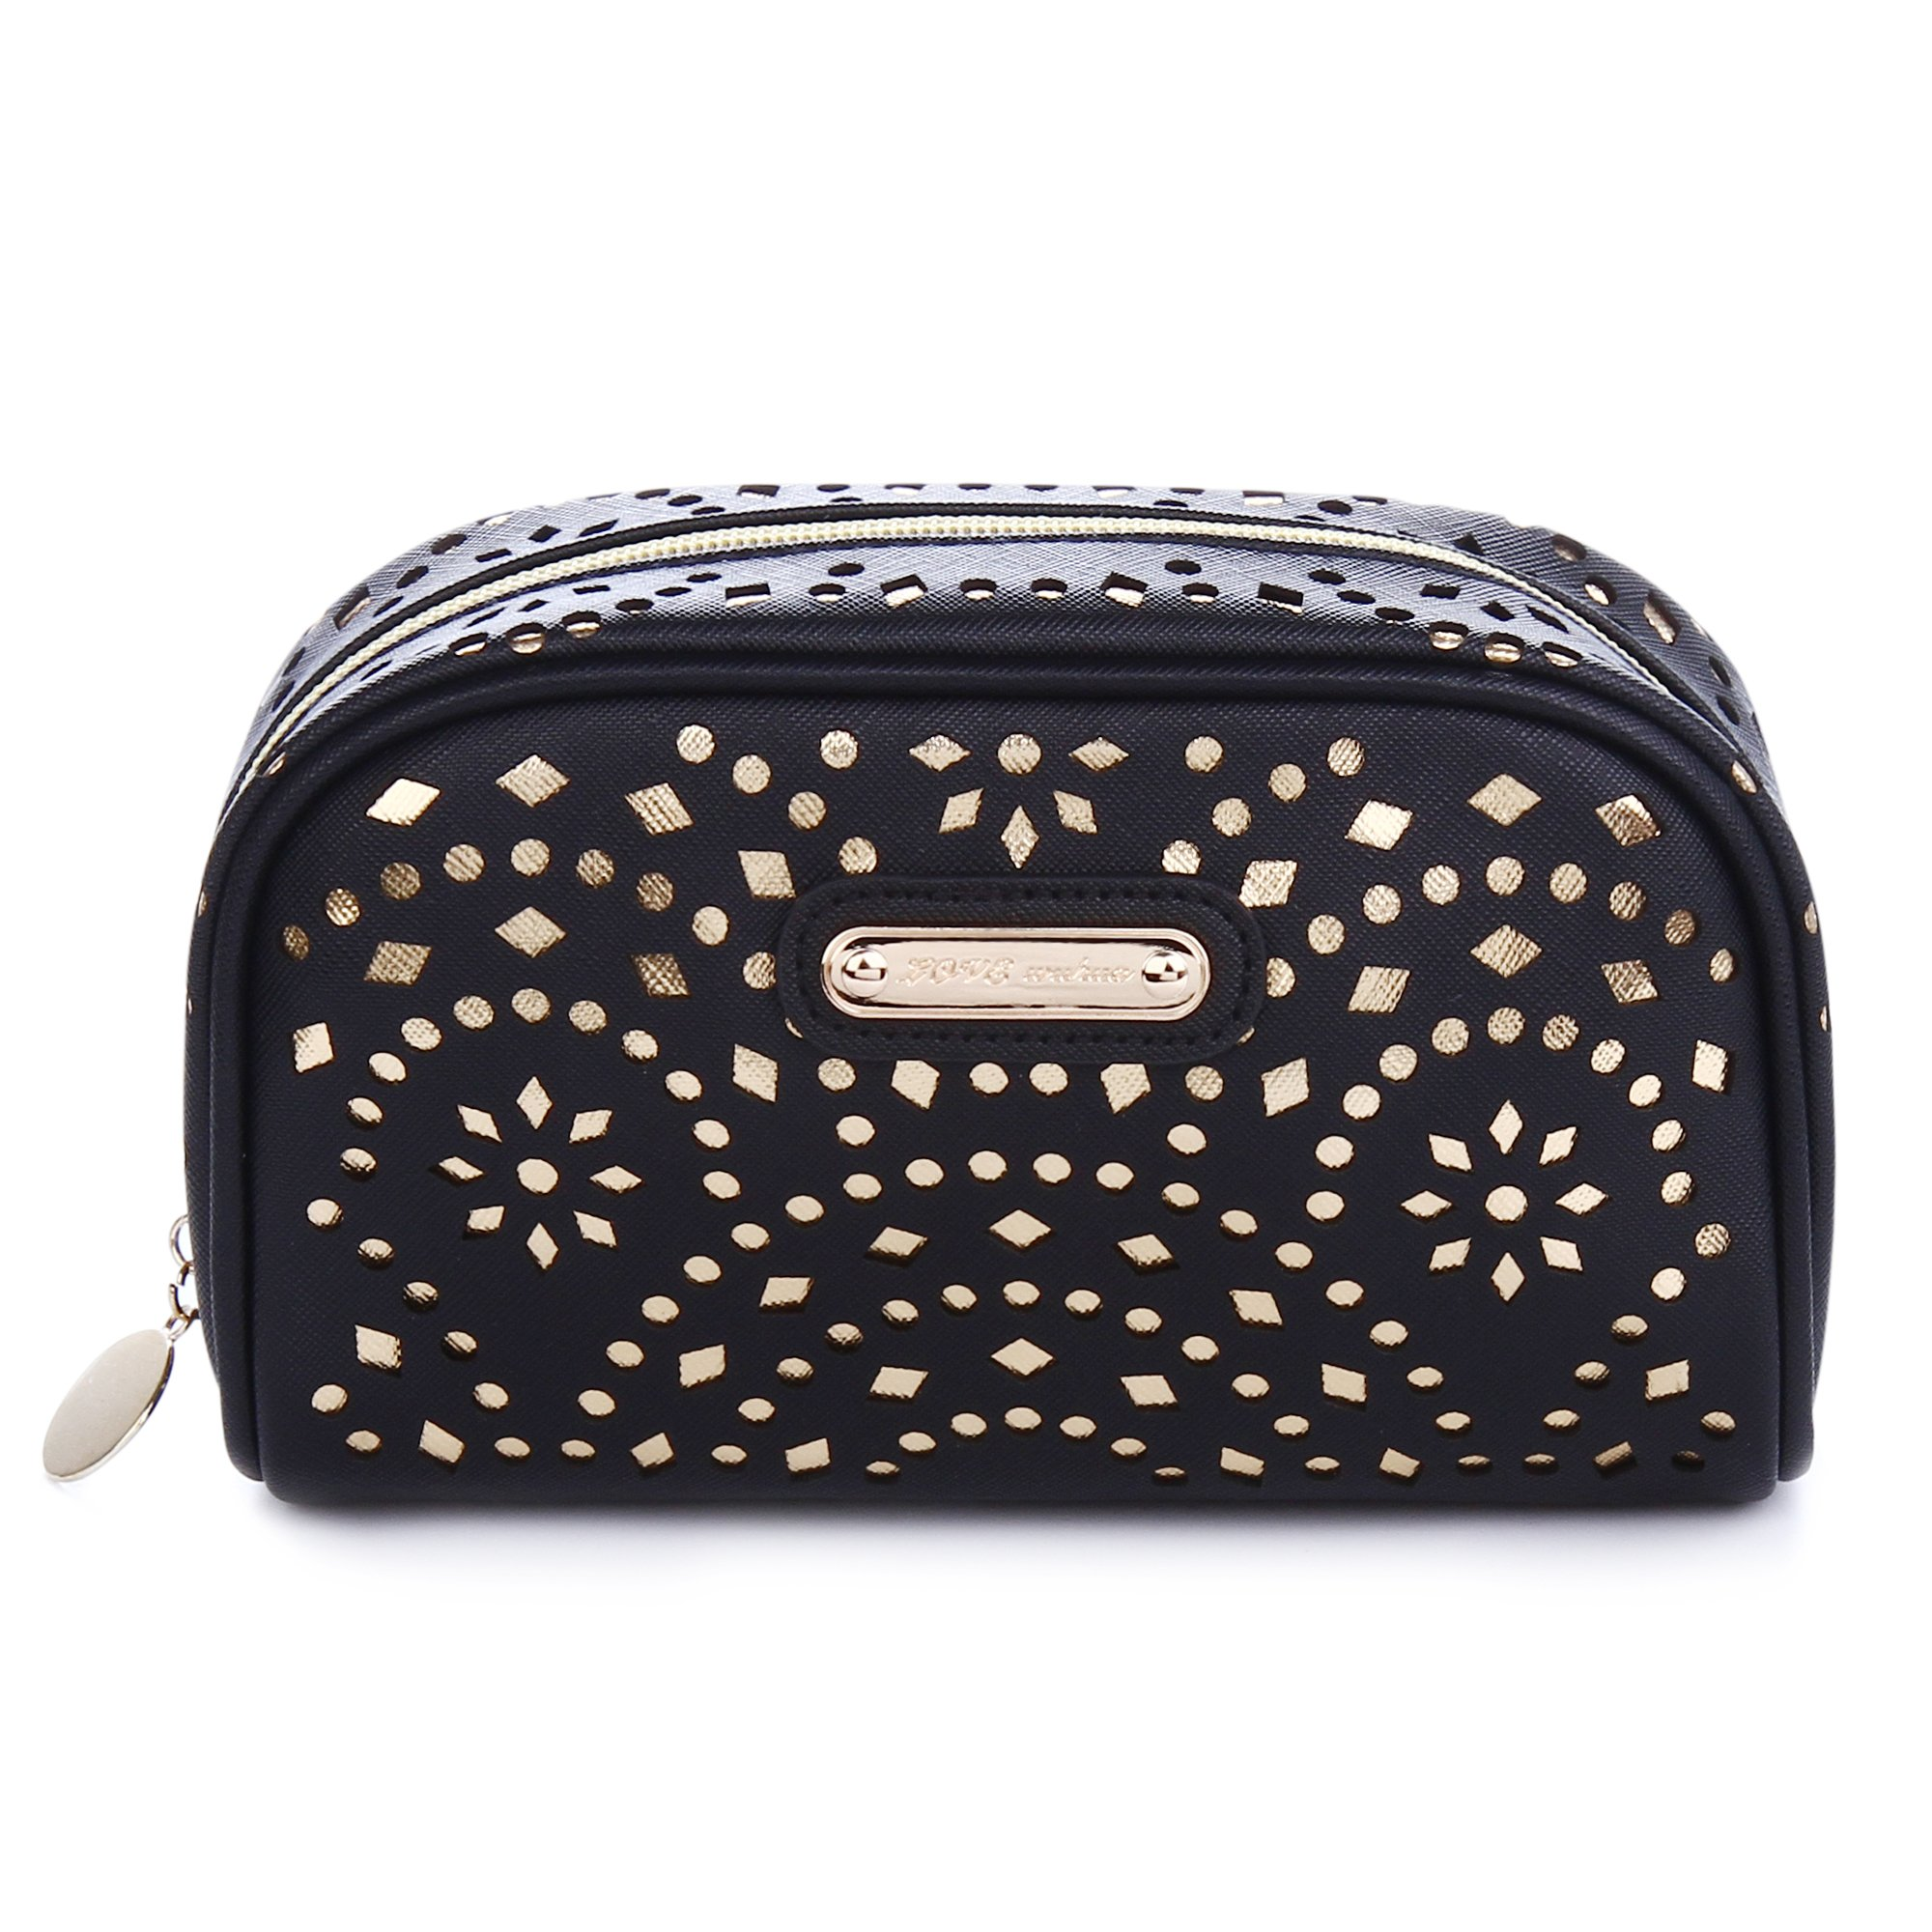 Makeup Bag, Wuhua Gold Pattern Cosmetic Bag with Zipper, Toiletry/Travel Bag for Women, Single Layer Storage Bag for Brushes Jewelry Accessories Collection